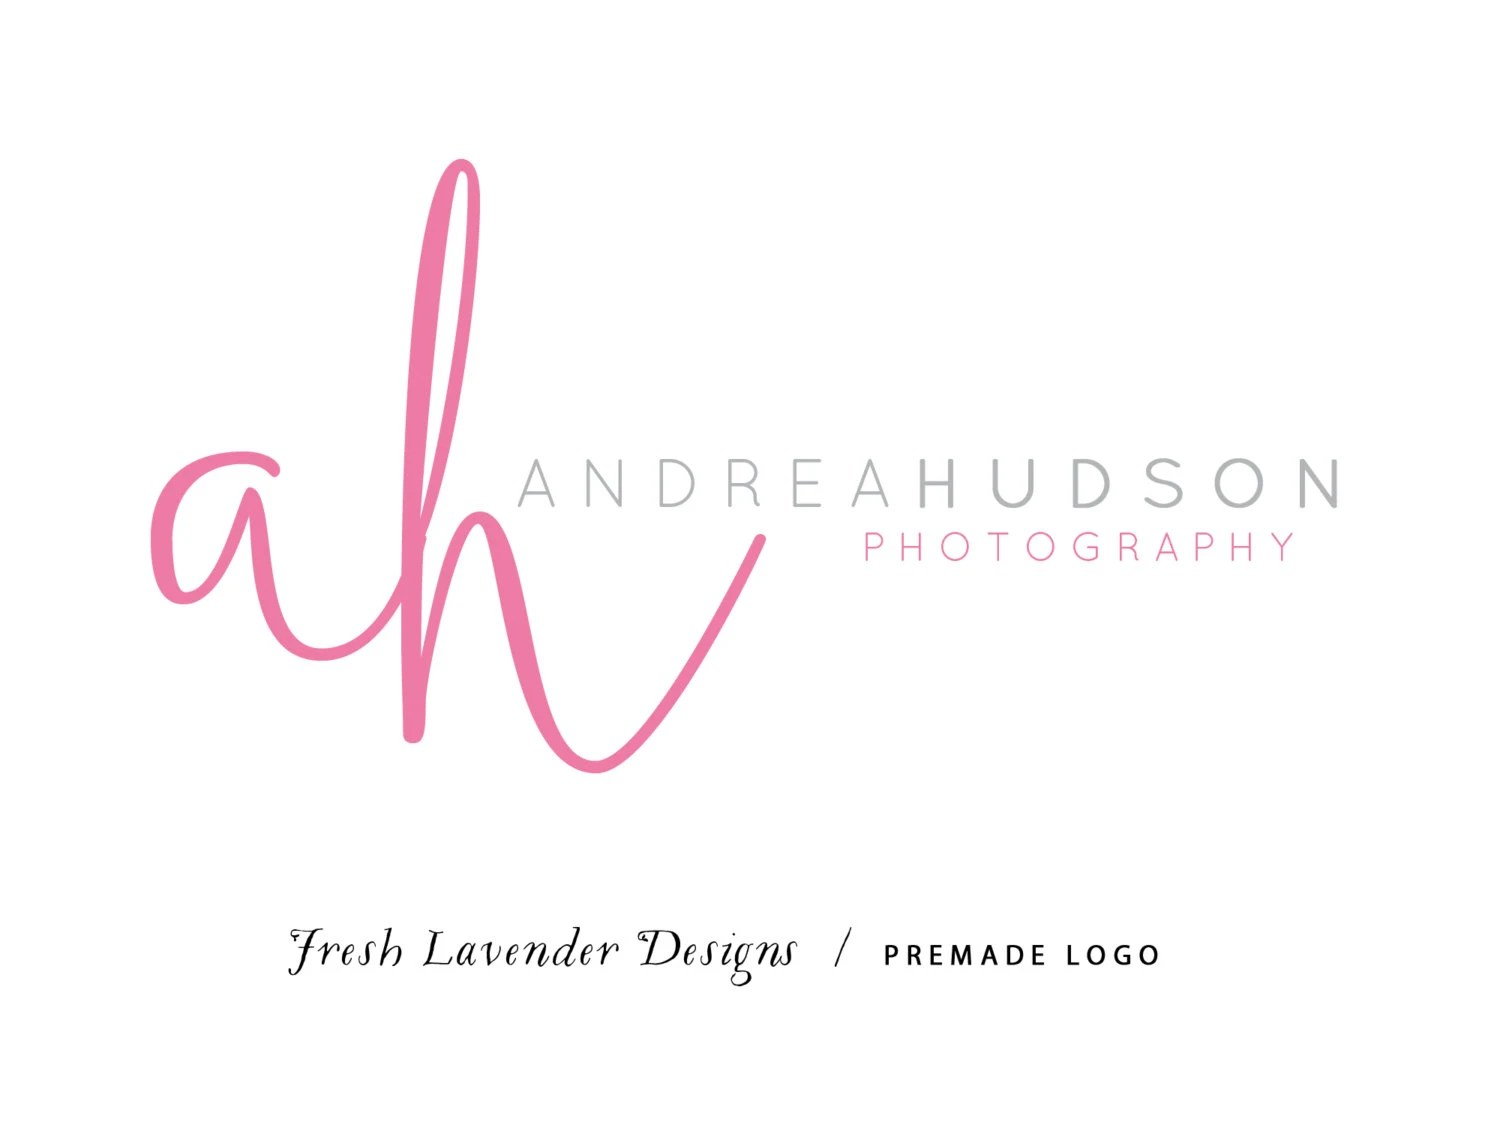 Custom Logo Design Premade Logo For Photographers